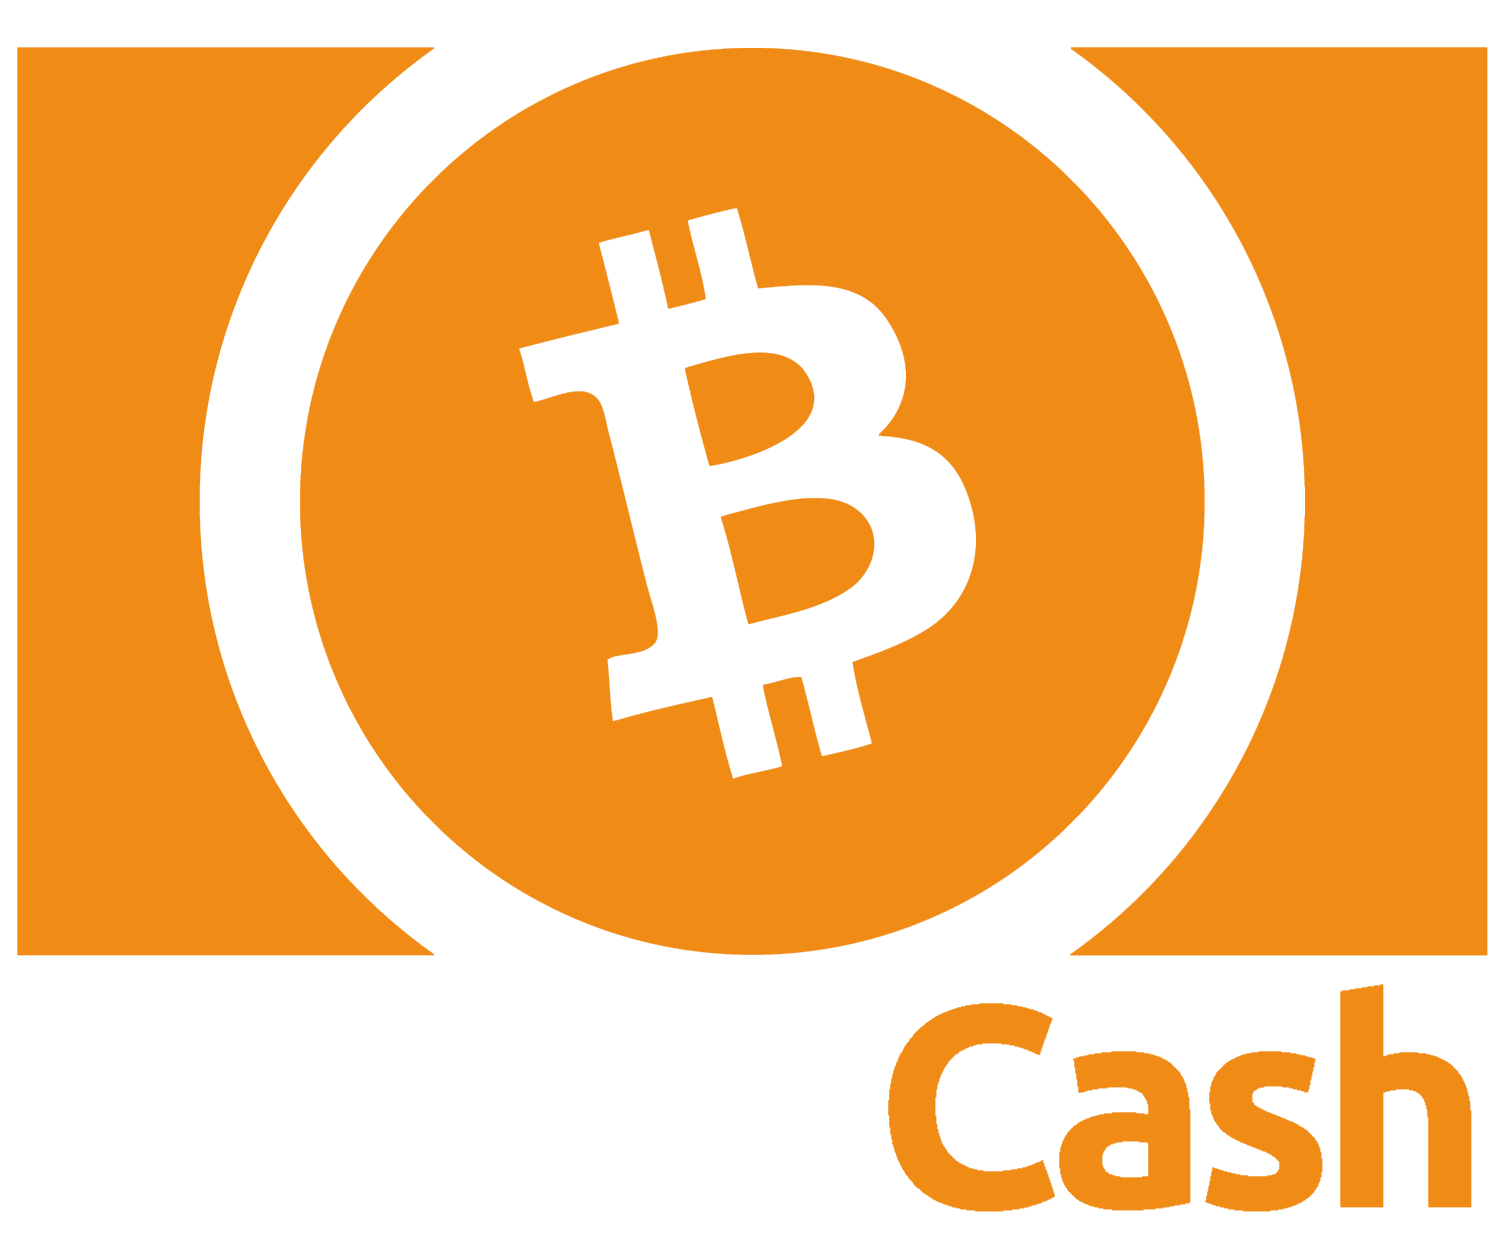 bitcoincash-white